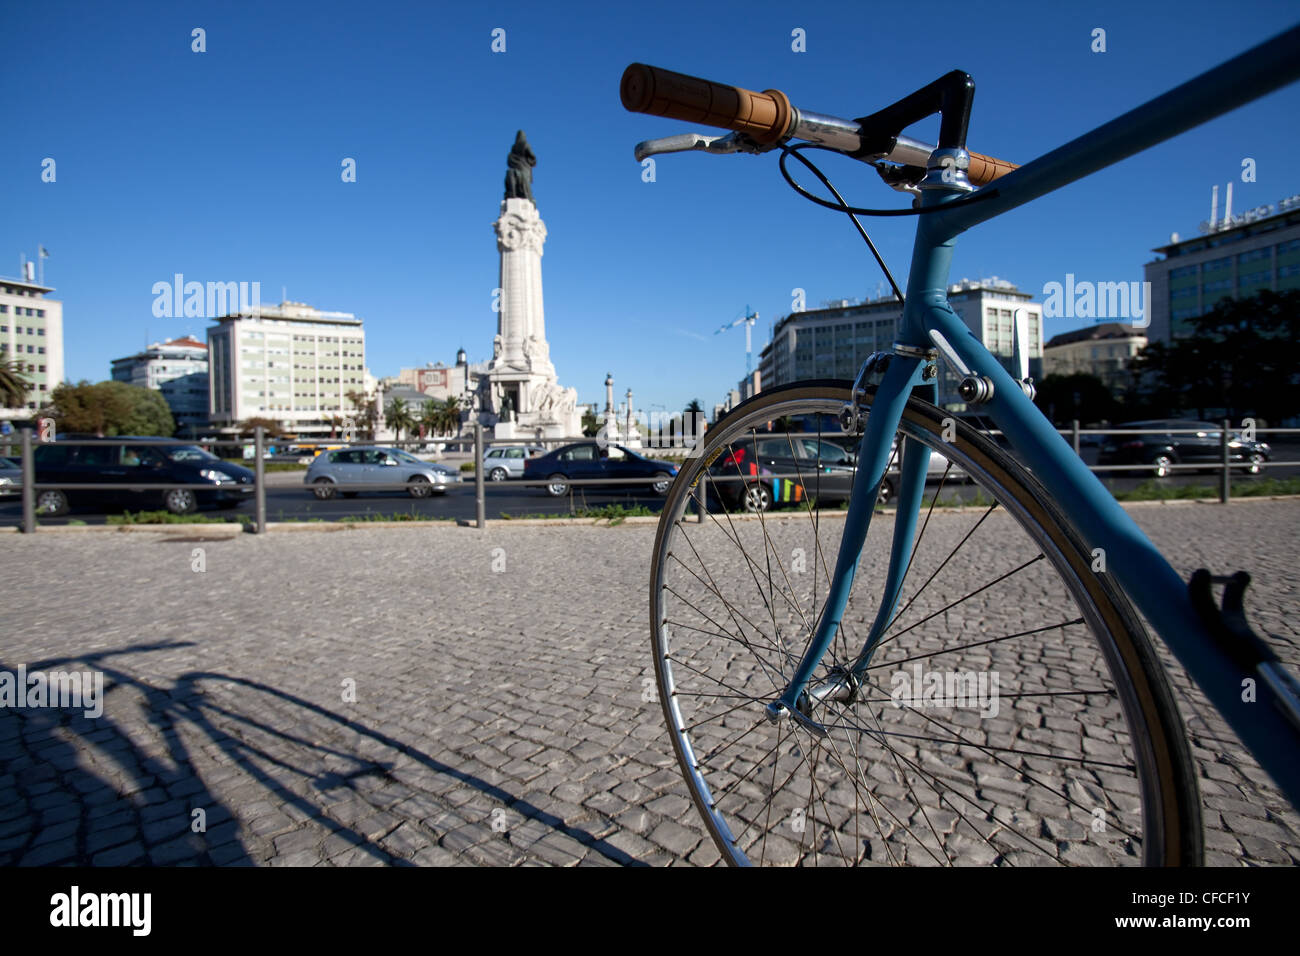 Bicycle in Lisbon city centre right next to Marques de Pombal and Avenida da Liberdade. - Stock Image